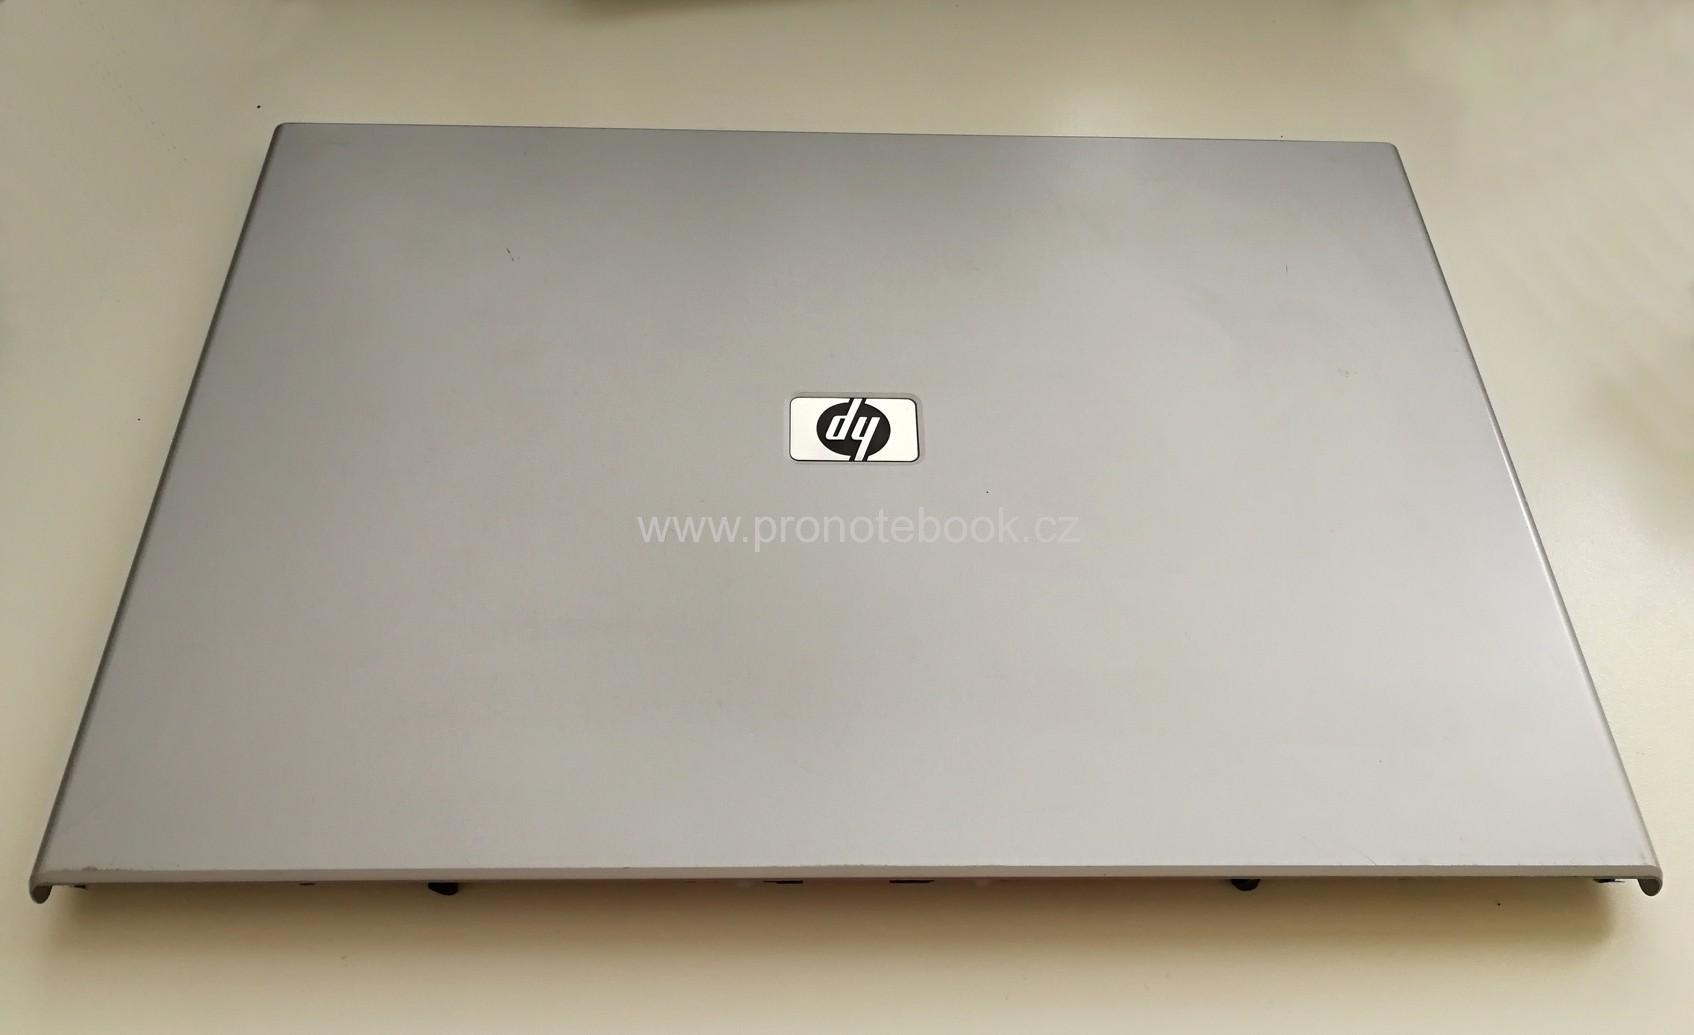 Pavilion dv 8000 APZK3000100 LCD back cover with Wifi antenna DC330006S00,